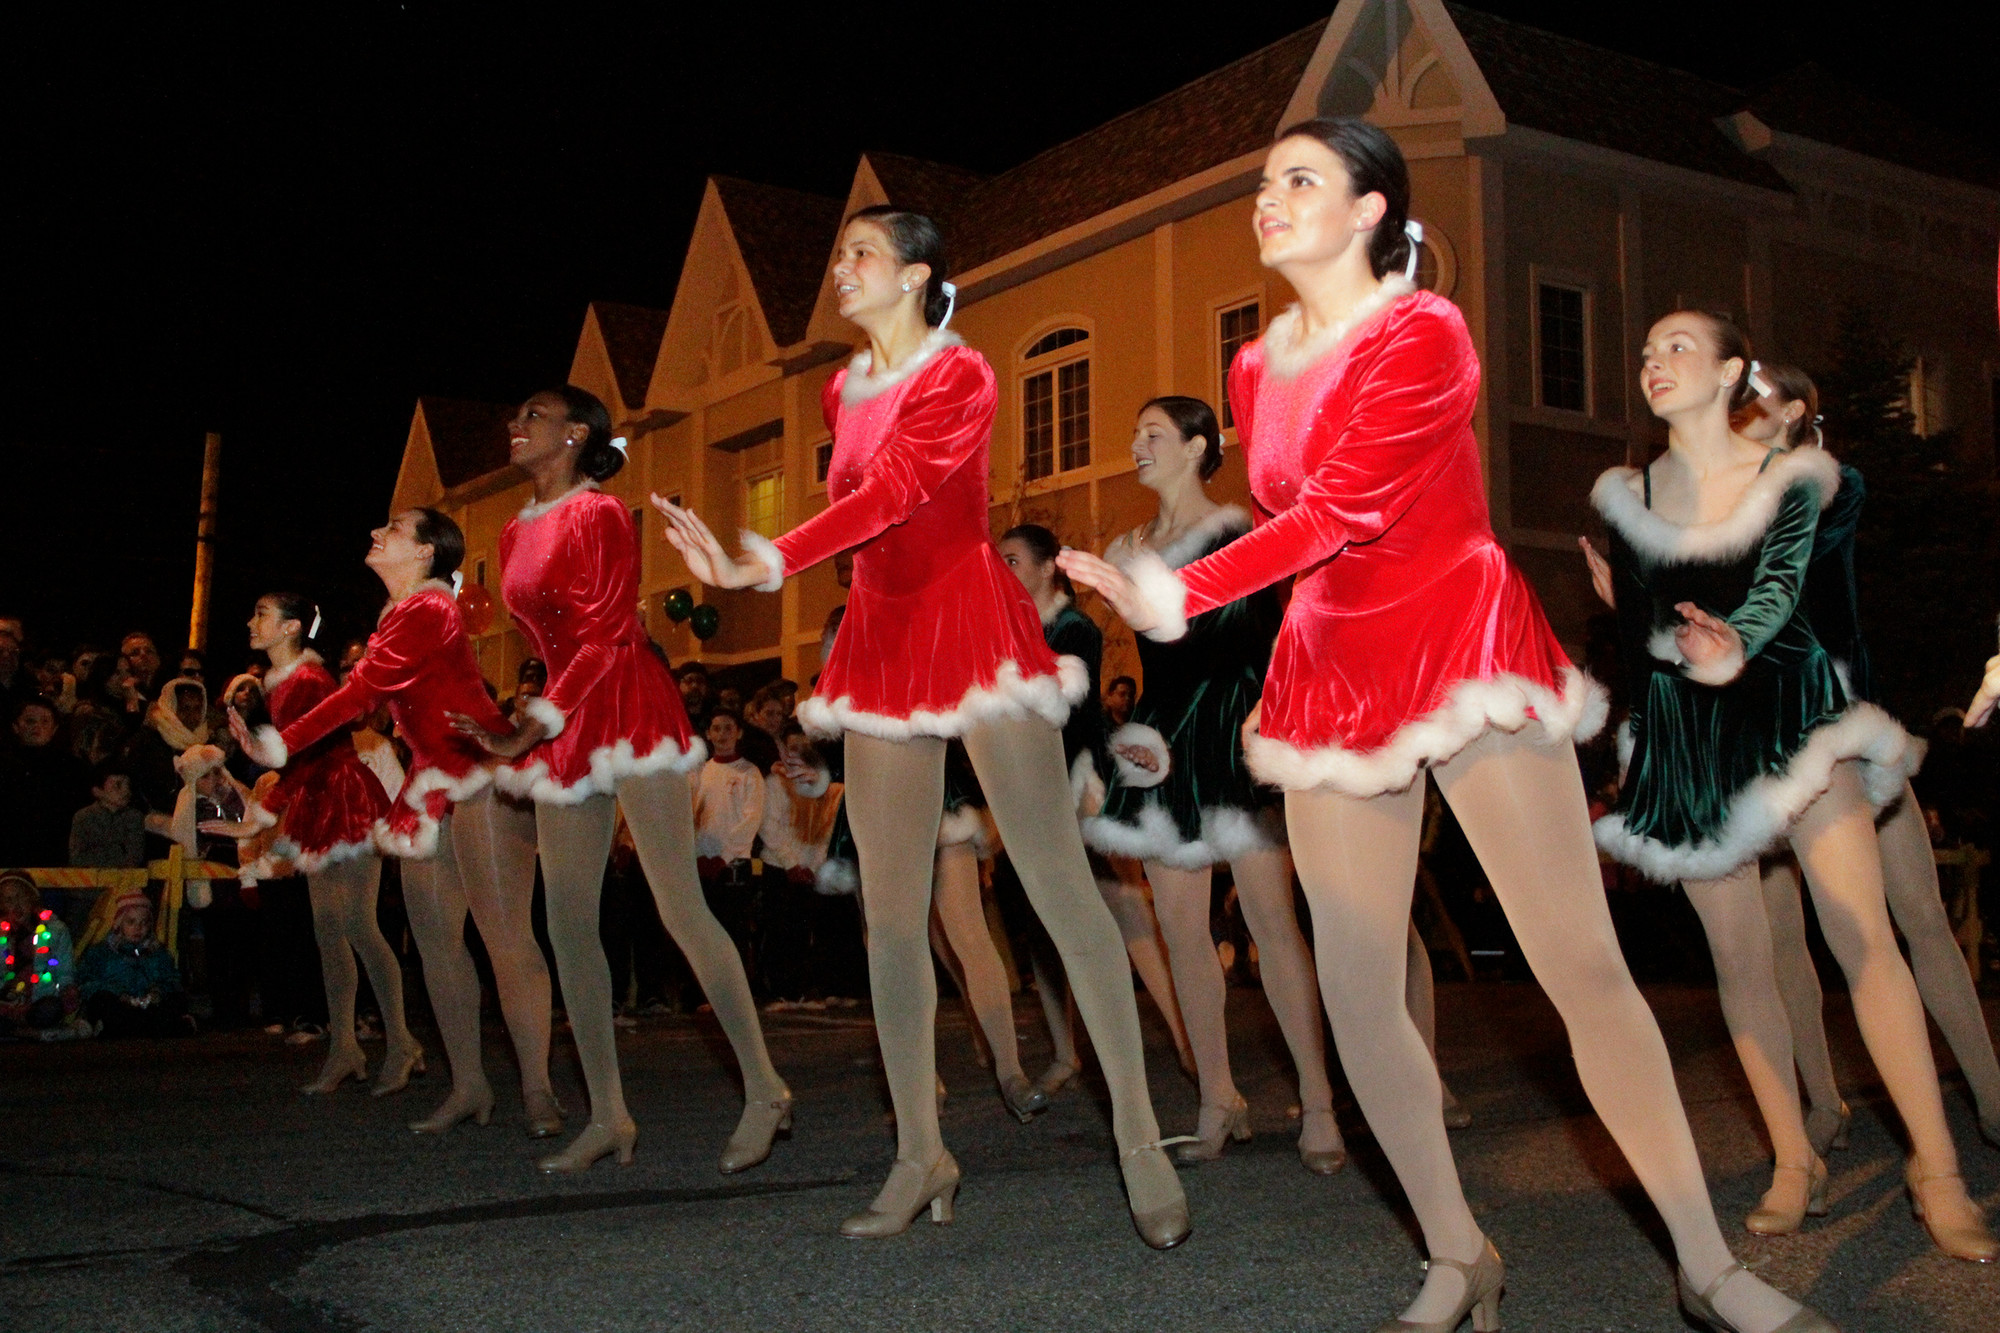 The Tap to Pointe dancers performed to Christmas tunes on Church St.